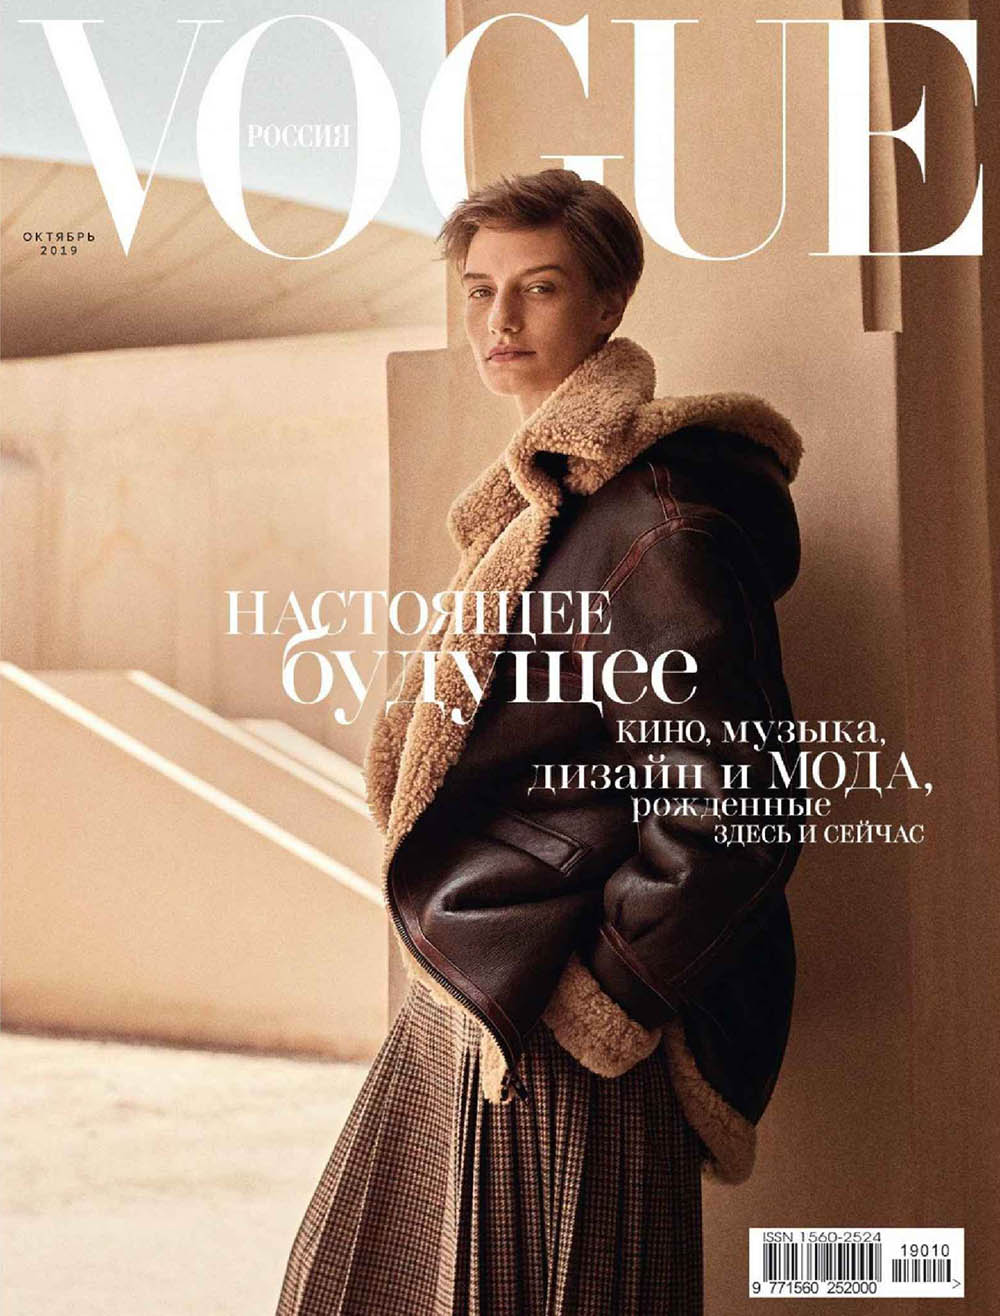 Veronika Kunz covers Vogue Russia October 2019 by Giampaolo Sgura